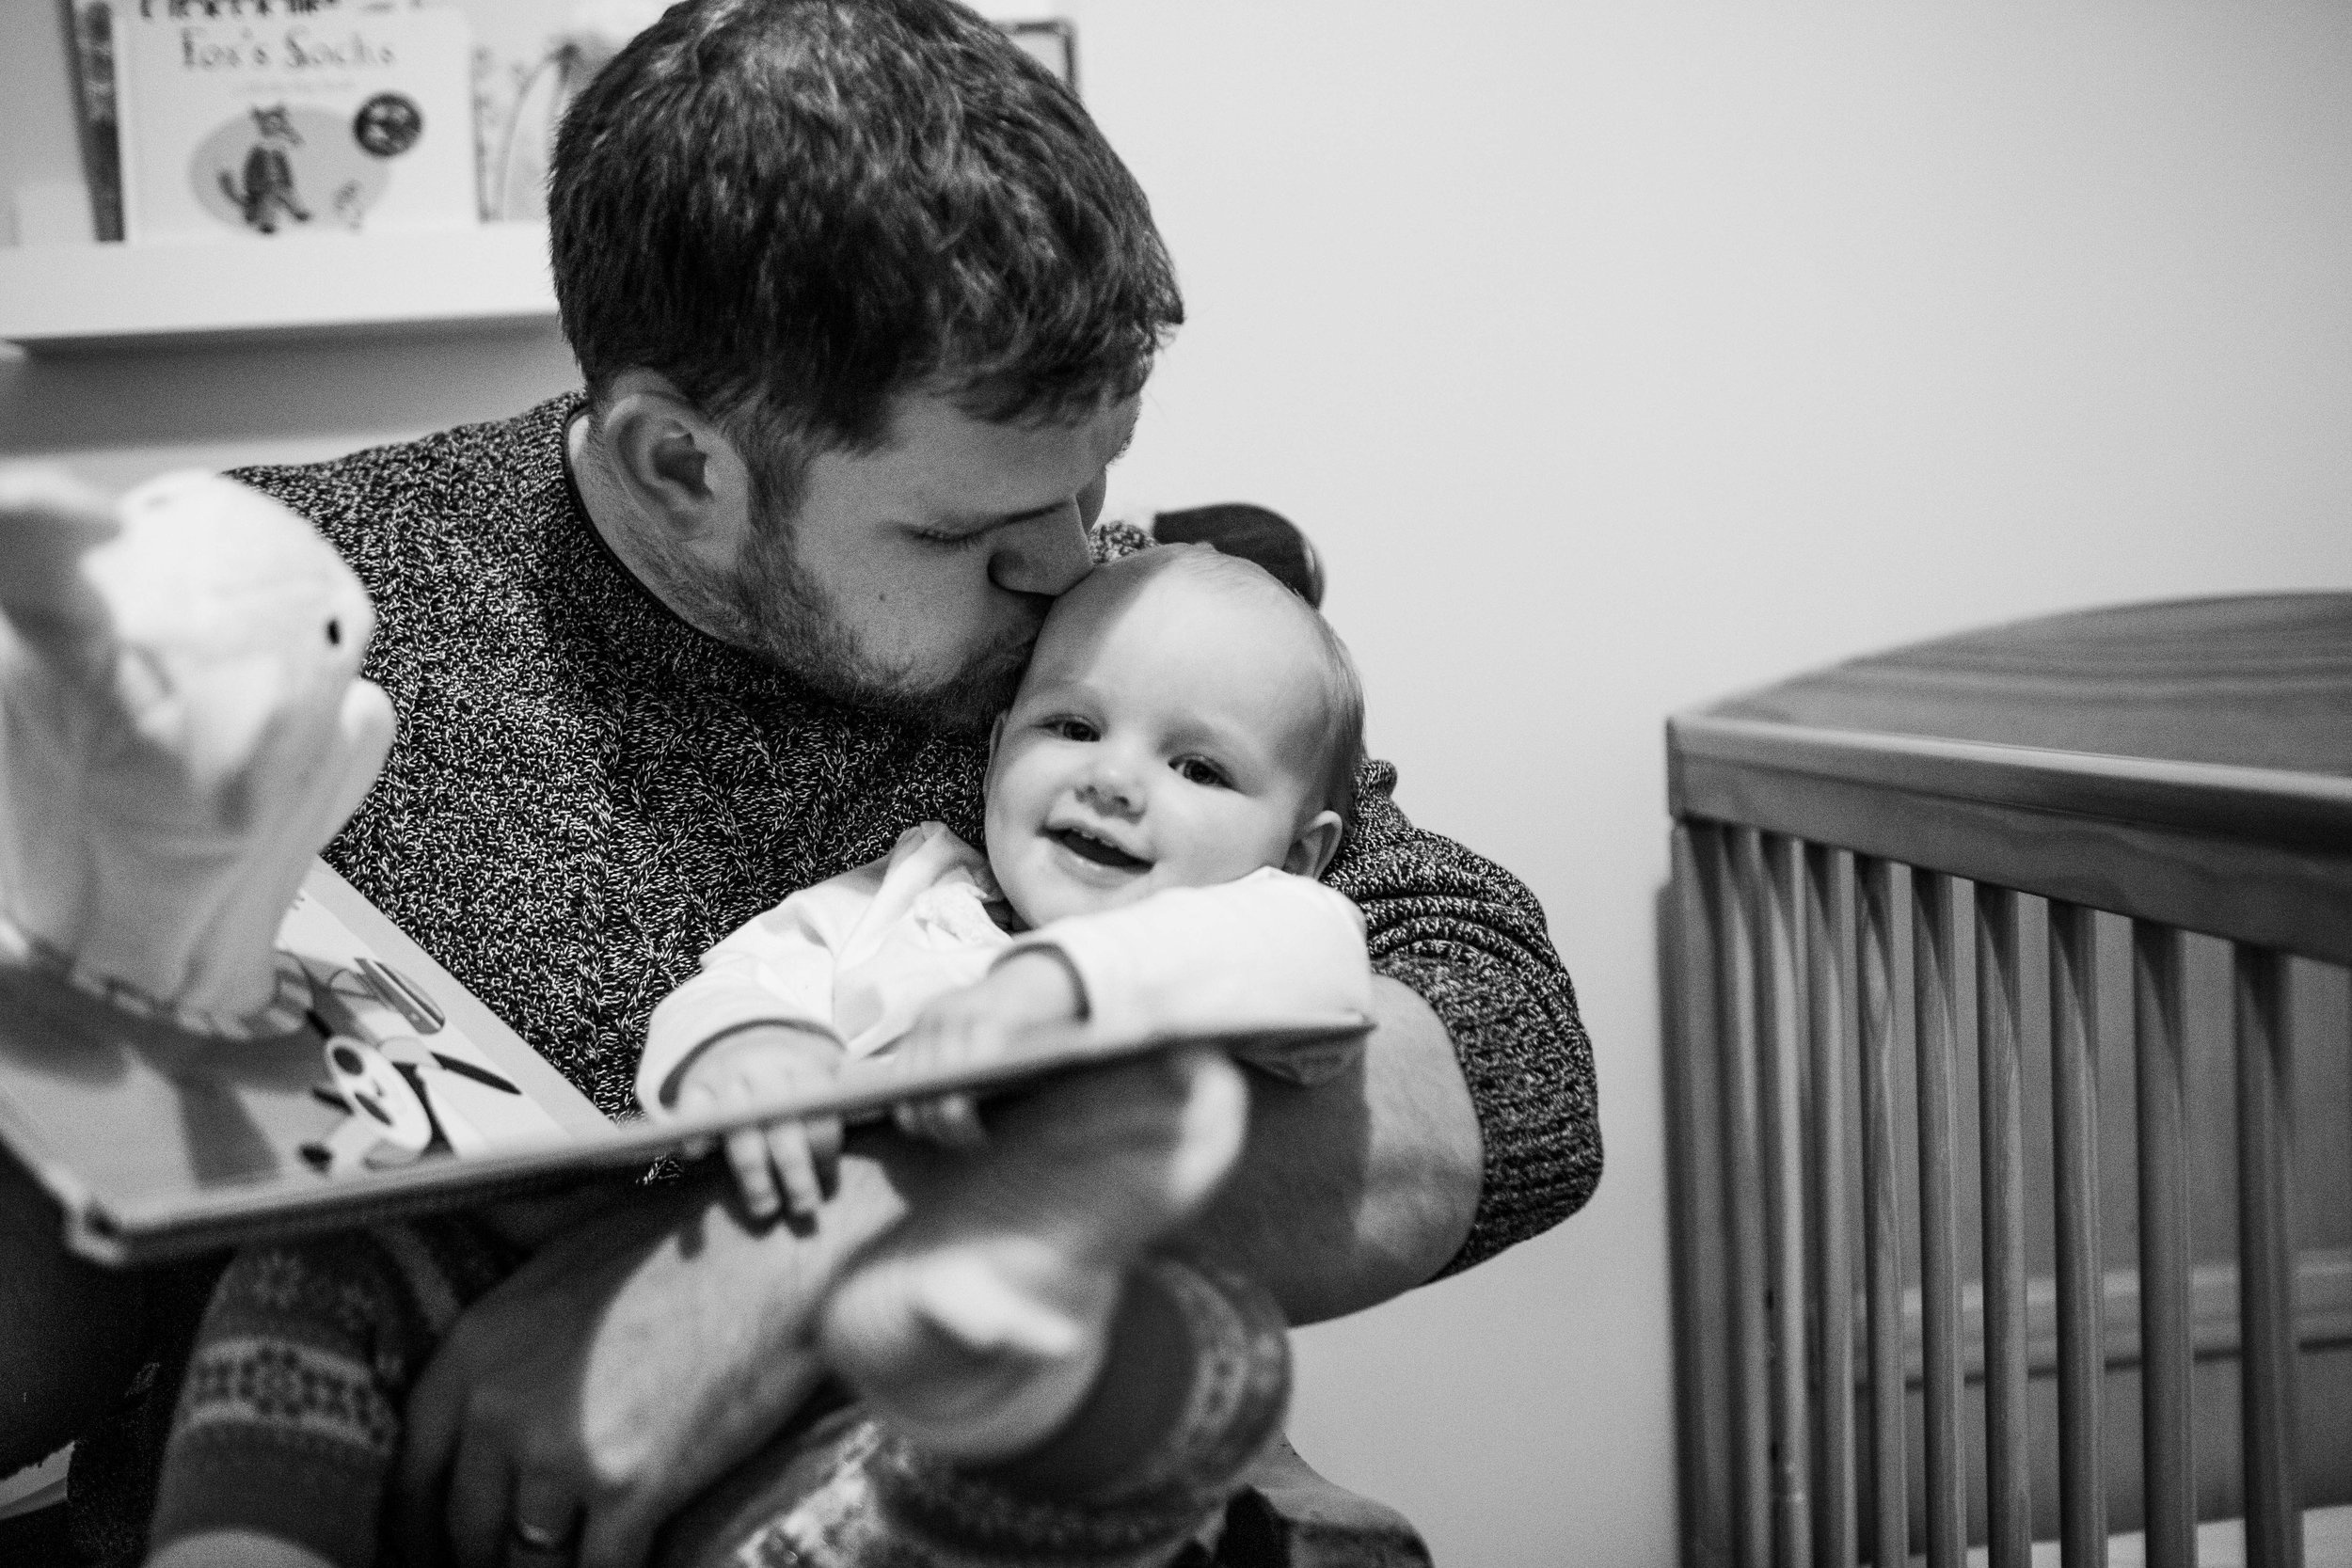 Bedtime reading, with baby, family portraits, uncle and niece, snuggle bunny book